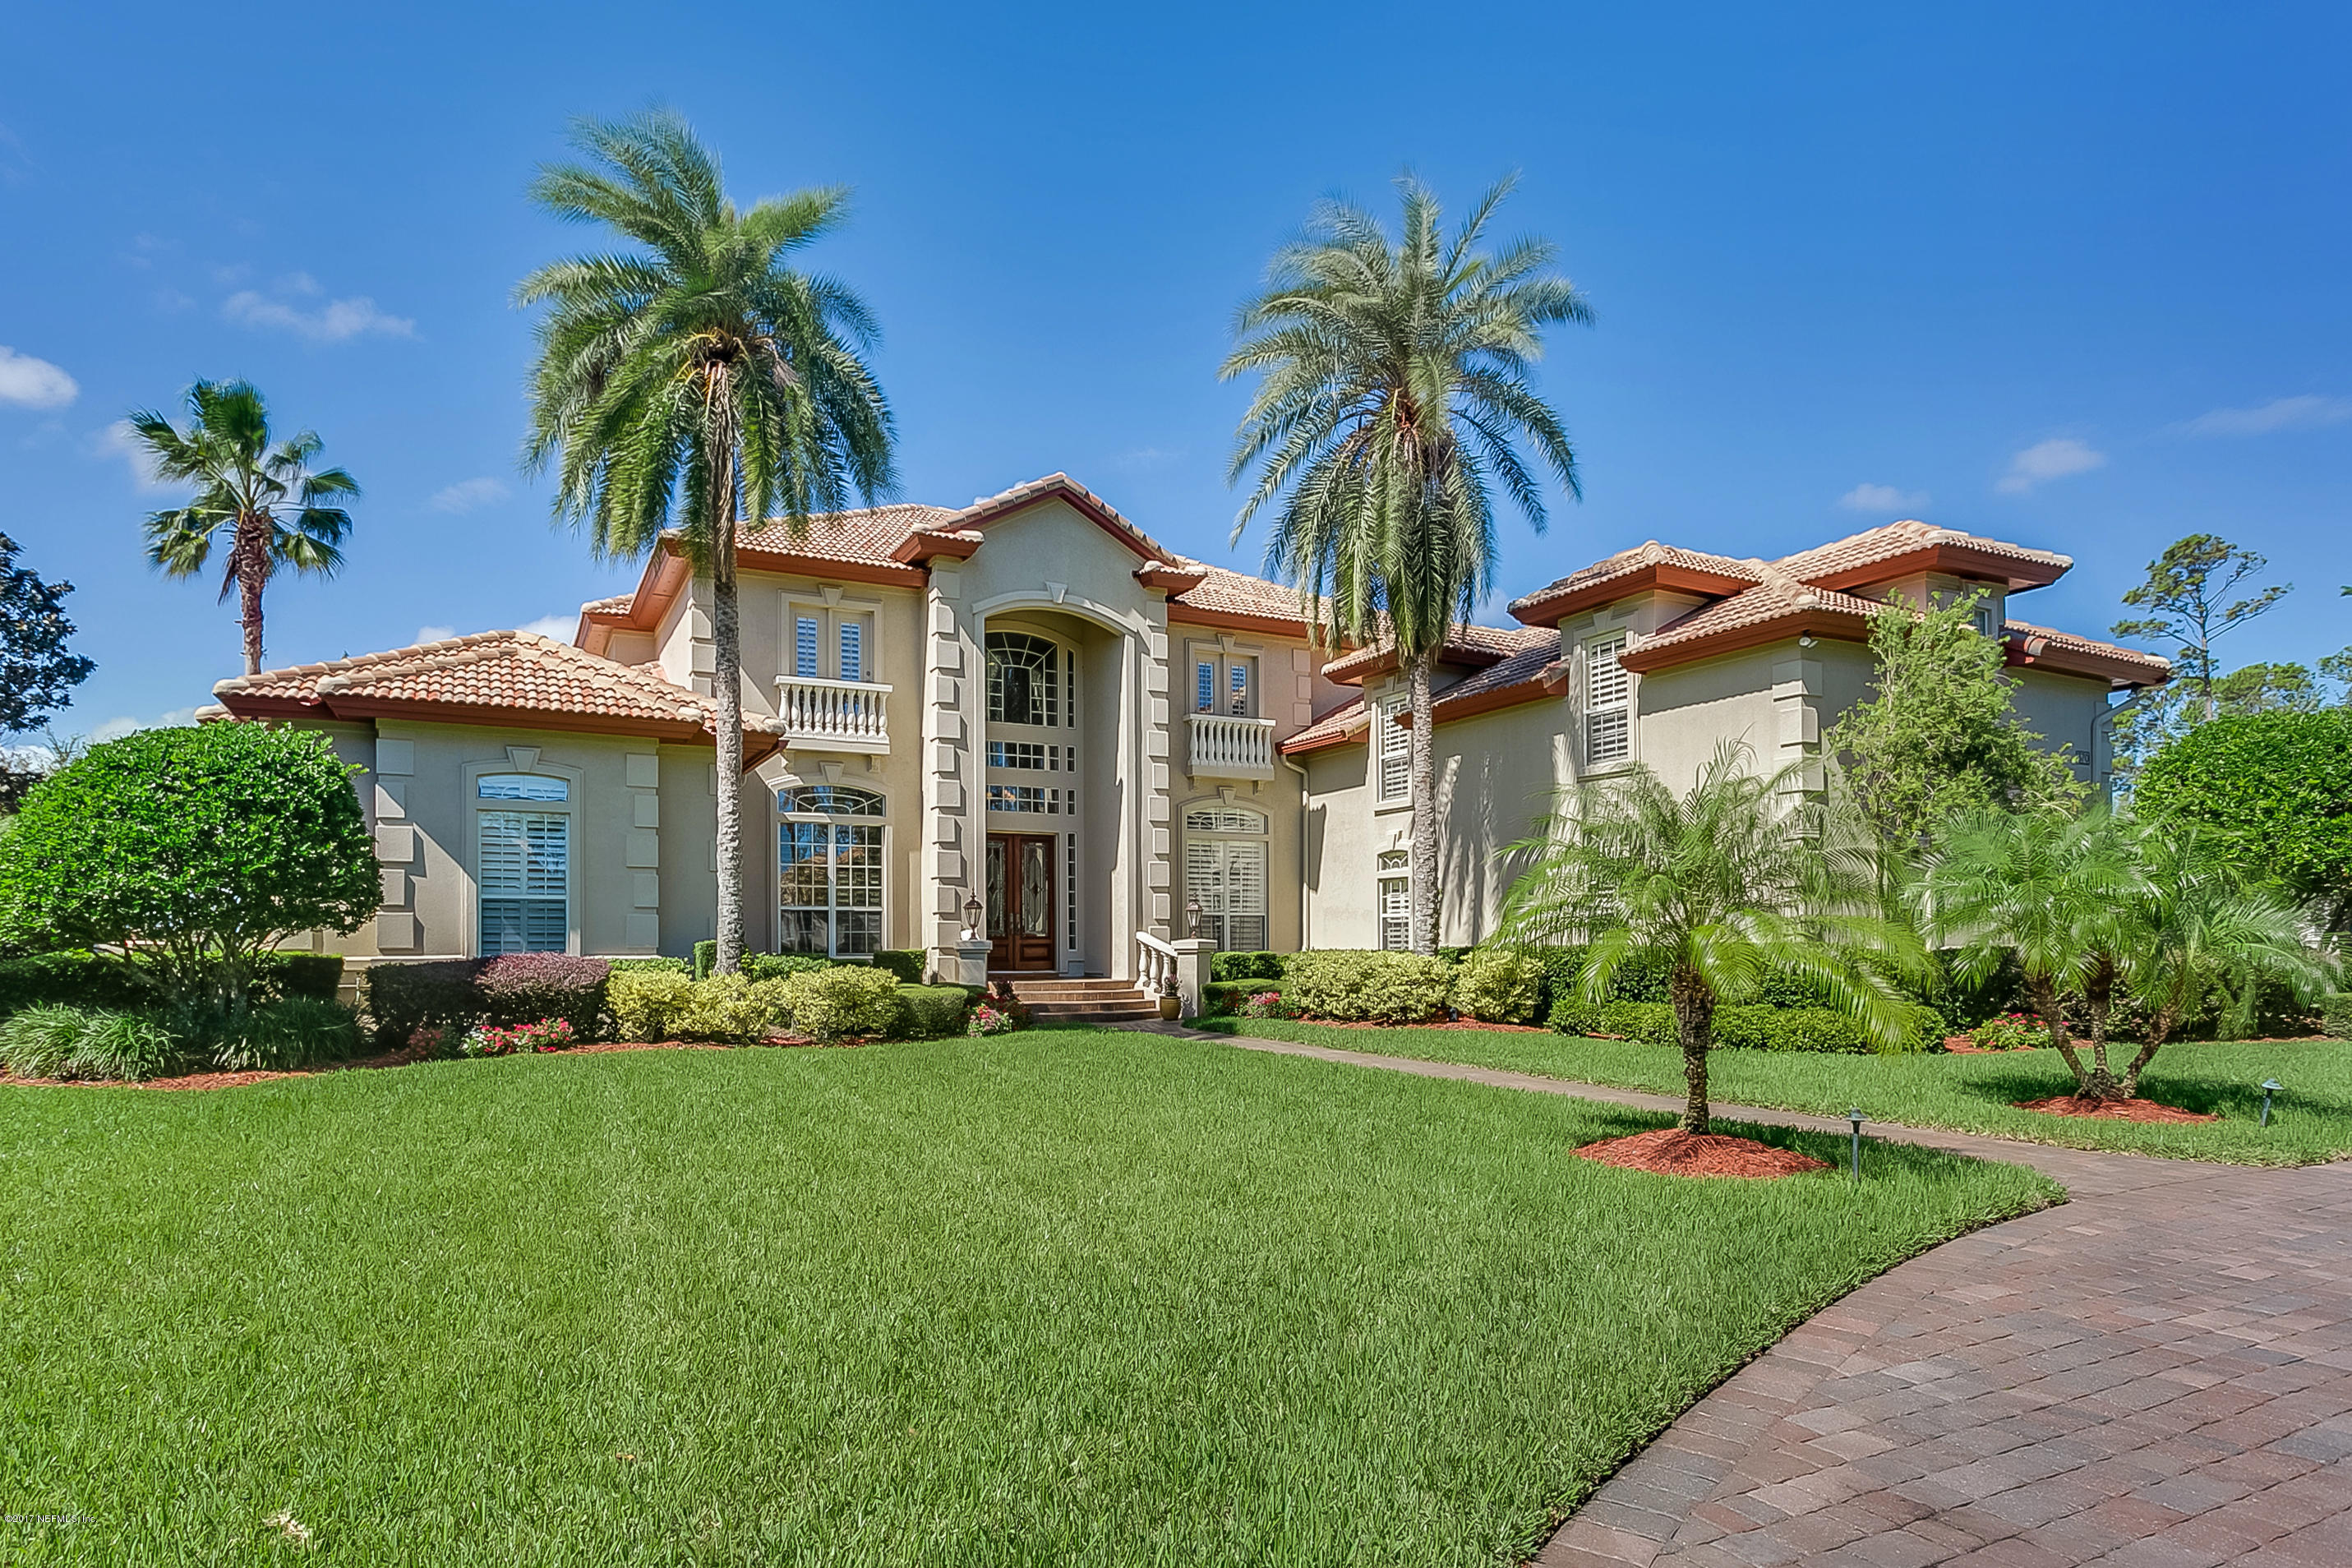 370 ROYAL TERN, PONTE VEDRA BEACH, FLORIDA 32082, 6 Bedrooms Bedrooms, ,6 BathroomsBathrooms,Residential - single family,For sale,ROYAL TERN,905638